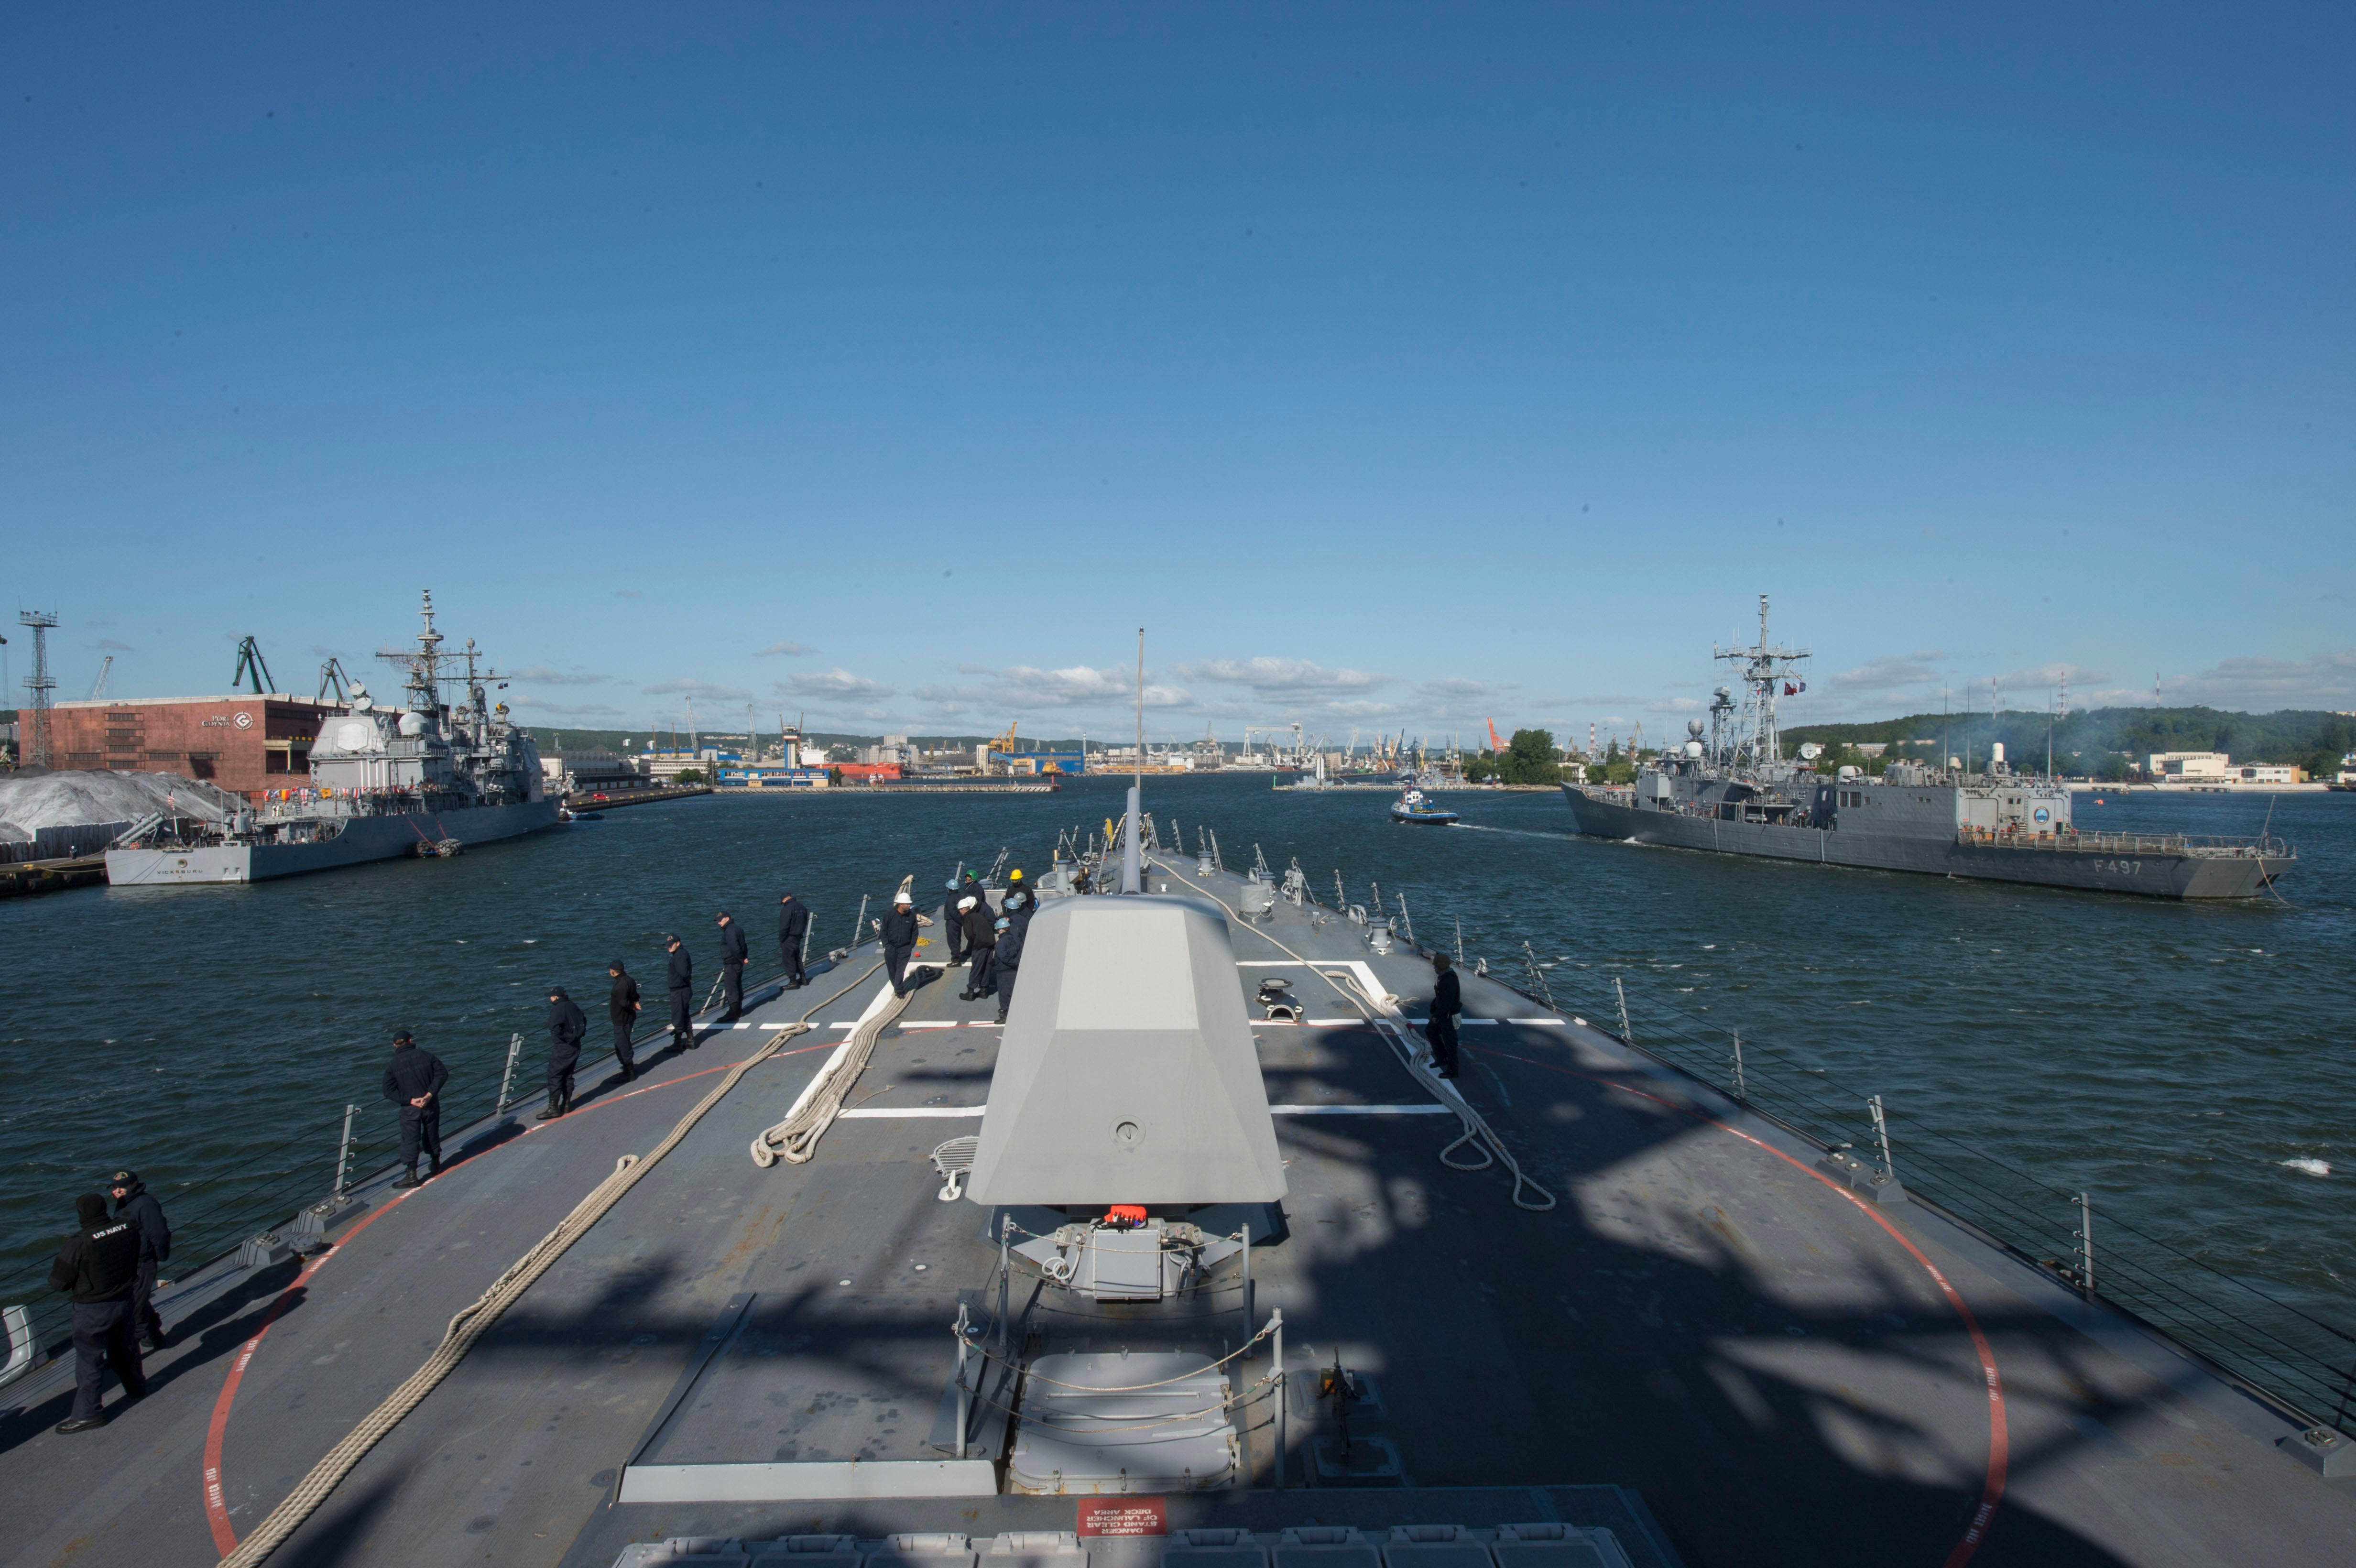 The guided-missile destroyer USS Jason Dunham (DDG 109) maneuvers into port in Gdynia, Poland, outboard of the guided-missile cruiser USS Vicksburg (CG 69) while the Turkish navy ship TCG Göksu (F 497) passes on the starboard side on June 4, 2015. US Navy photo.